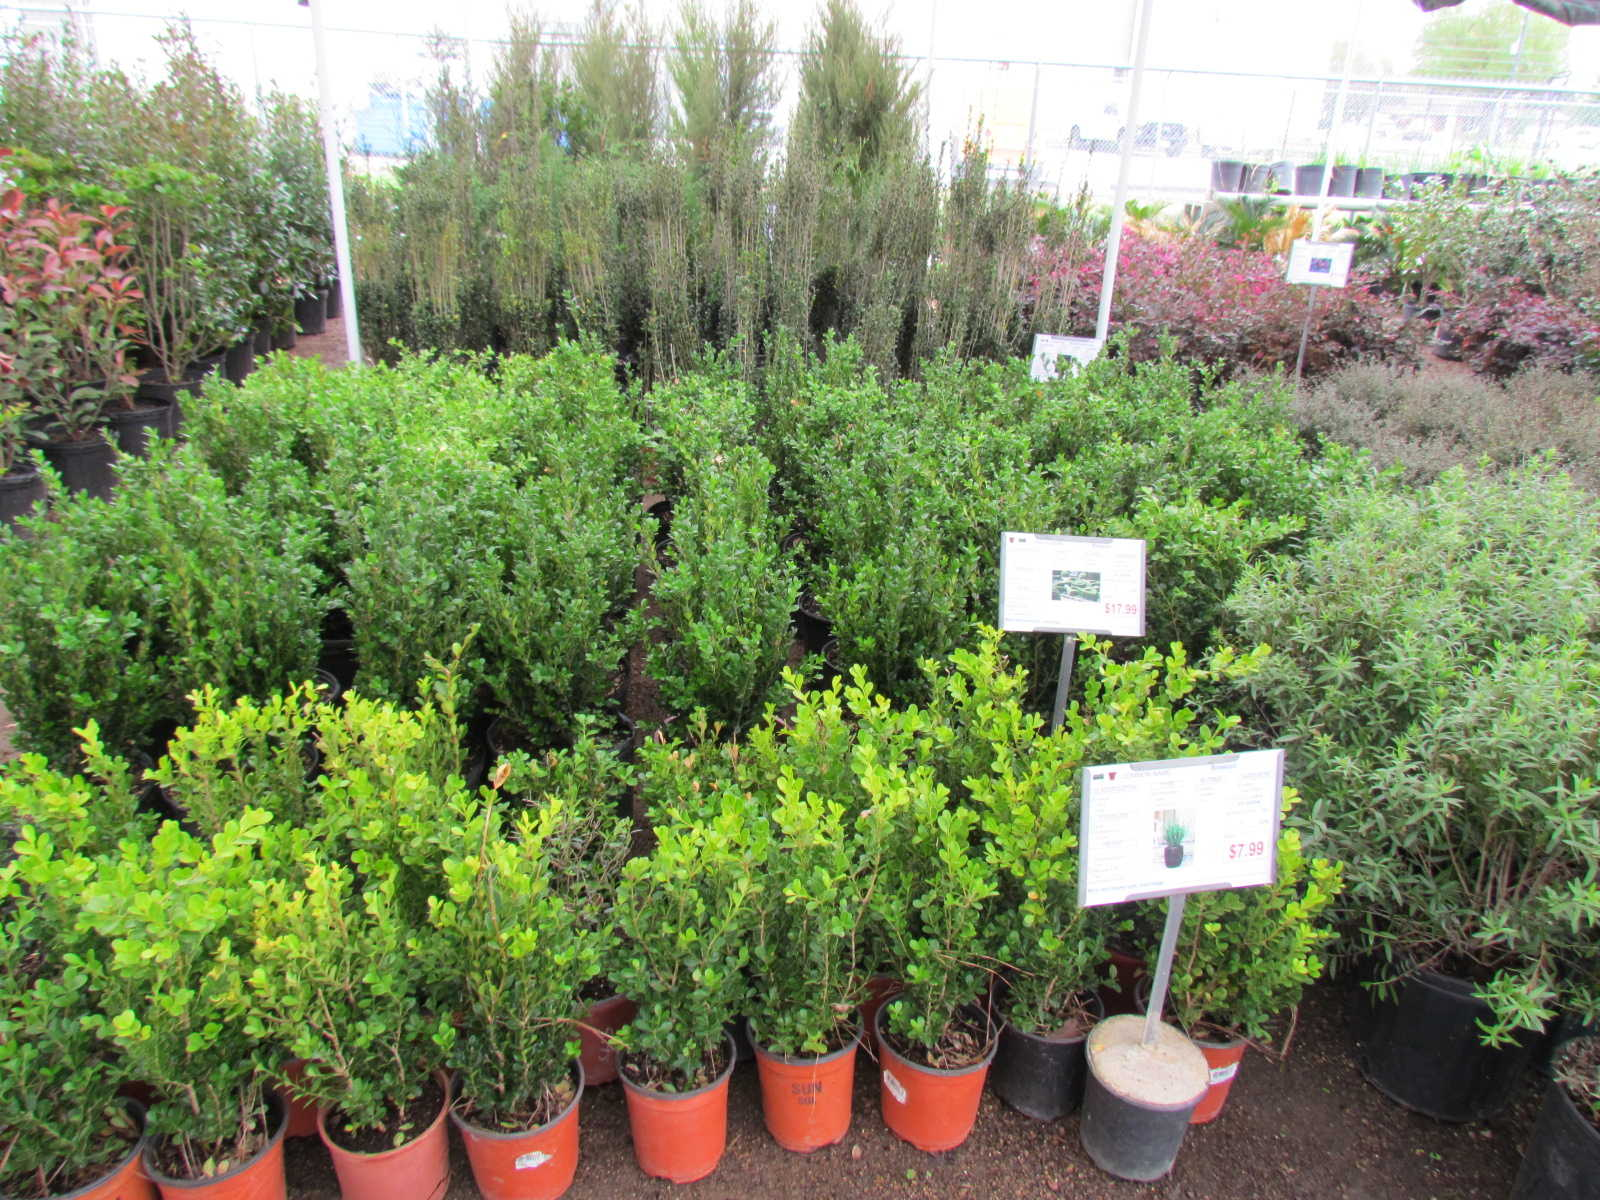 Large variety of shrubs including Encore Azaleas, Boxwoods, Yaupons, Crotons, Drift Roses and more at Madison Gardens Nursery, Spring, TX